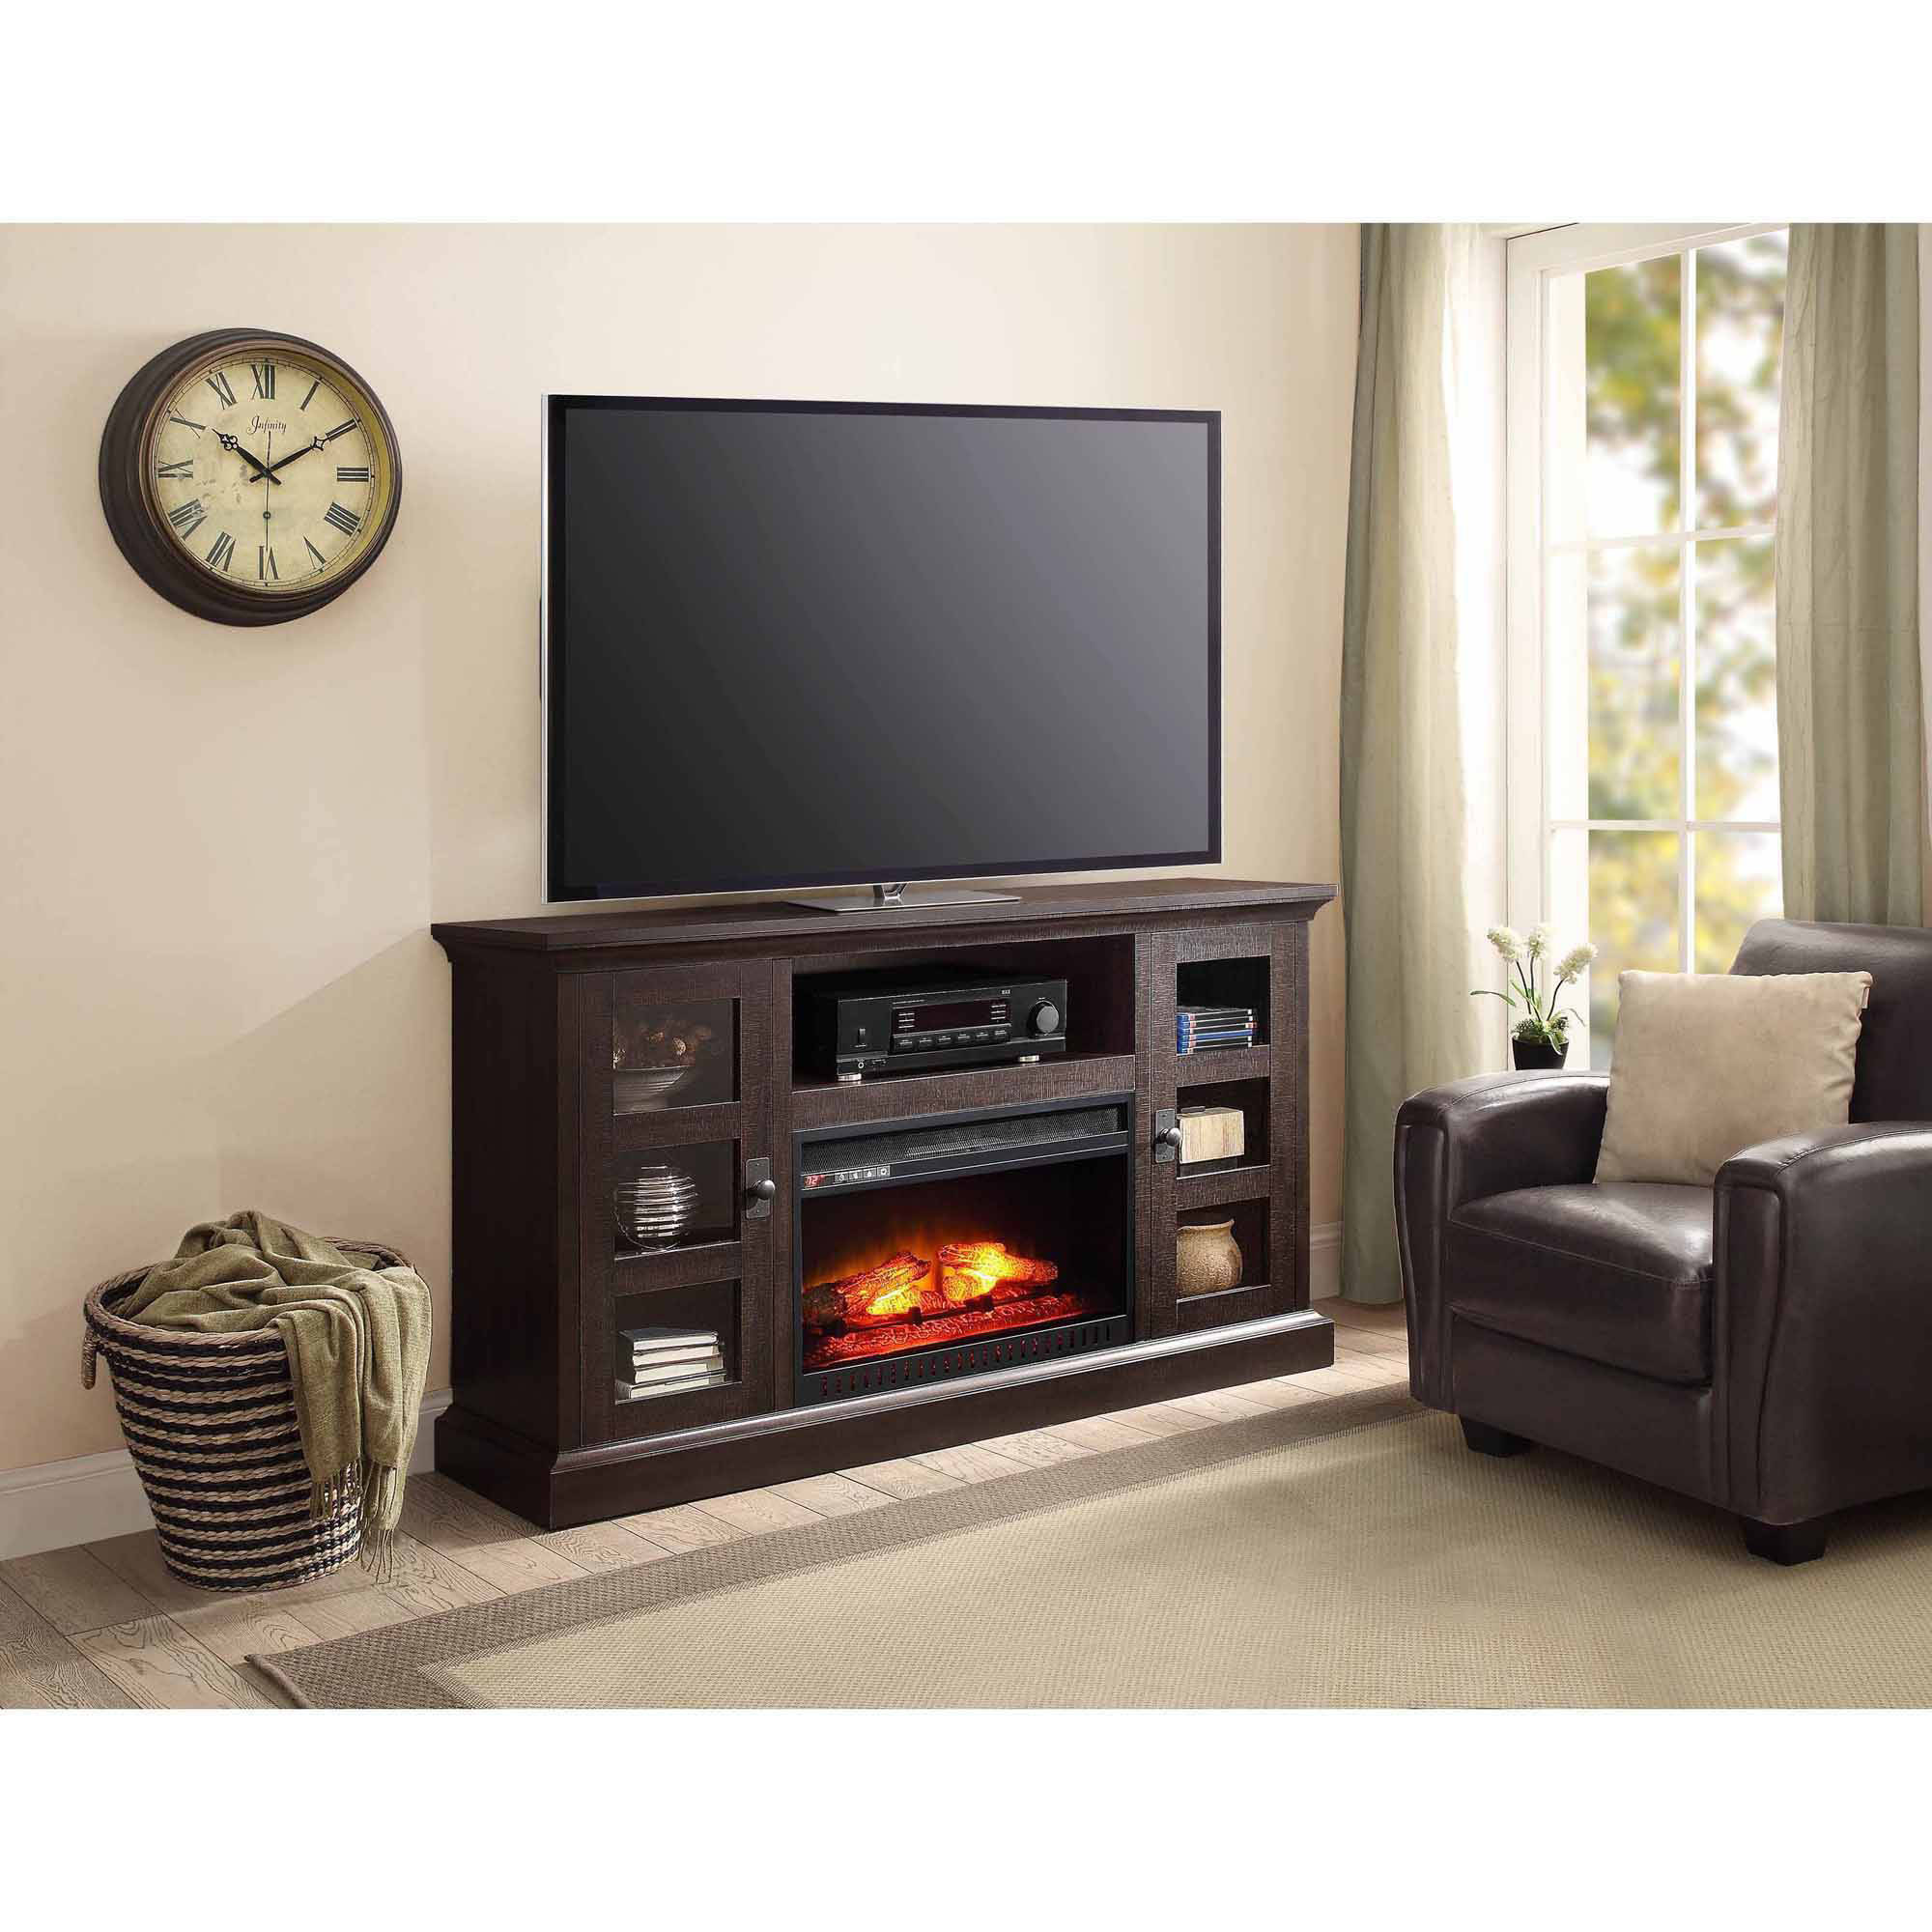 "Whalen Media Fireplace Console for TVs up to 70"", Dark Rustic Brown"